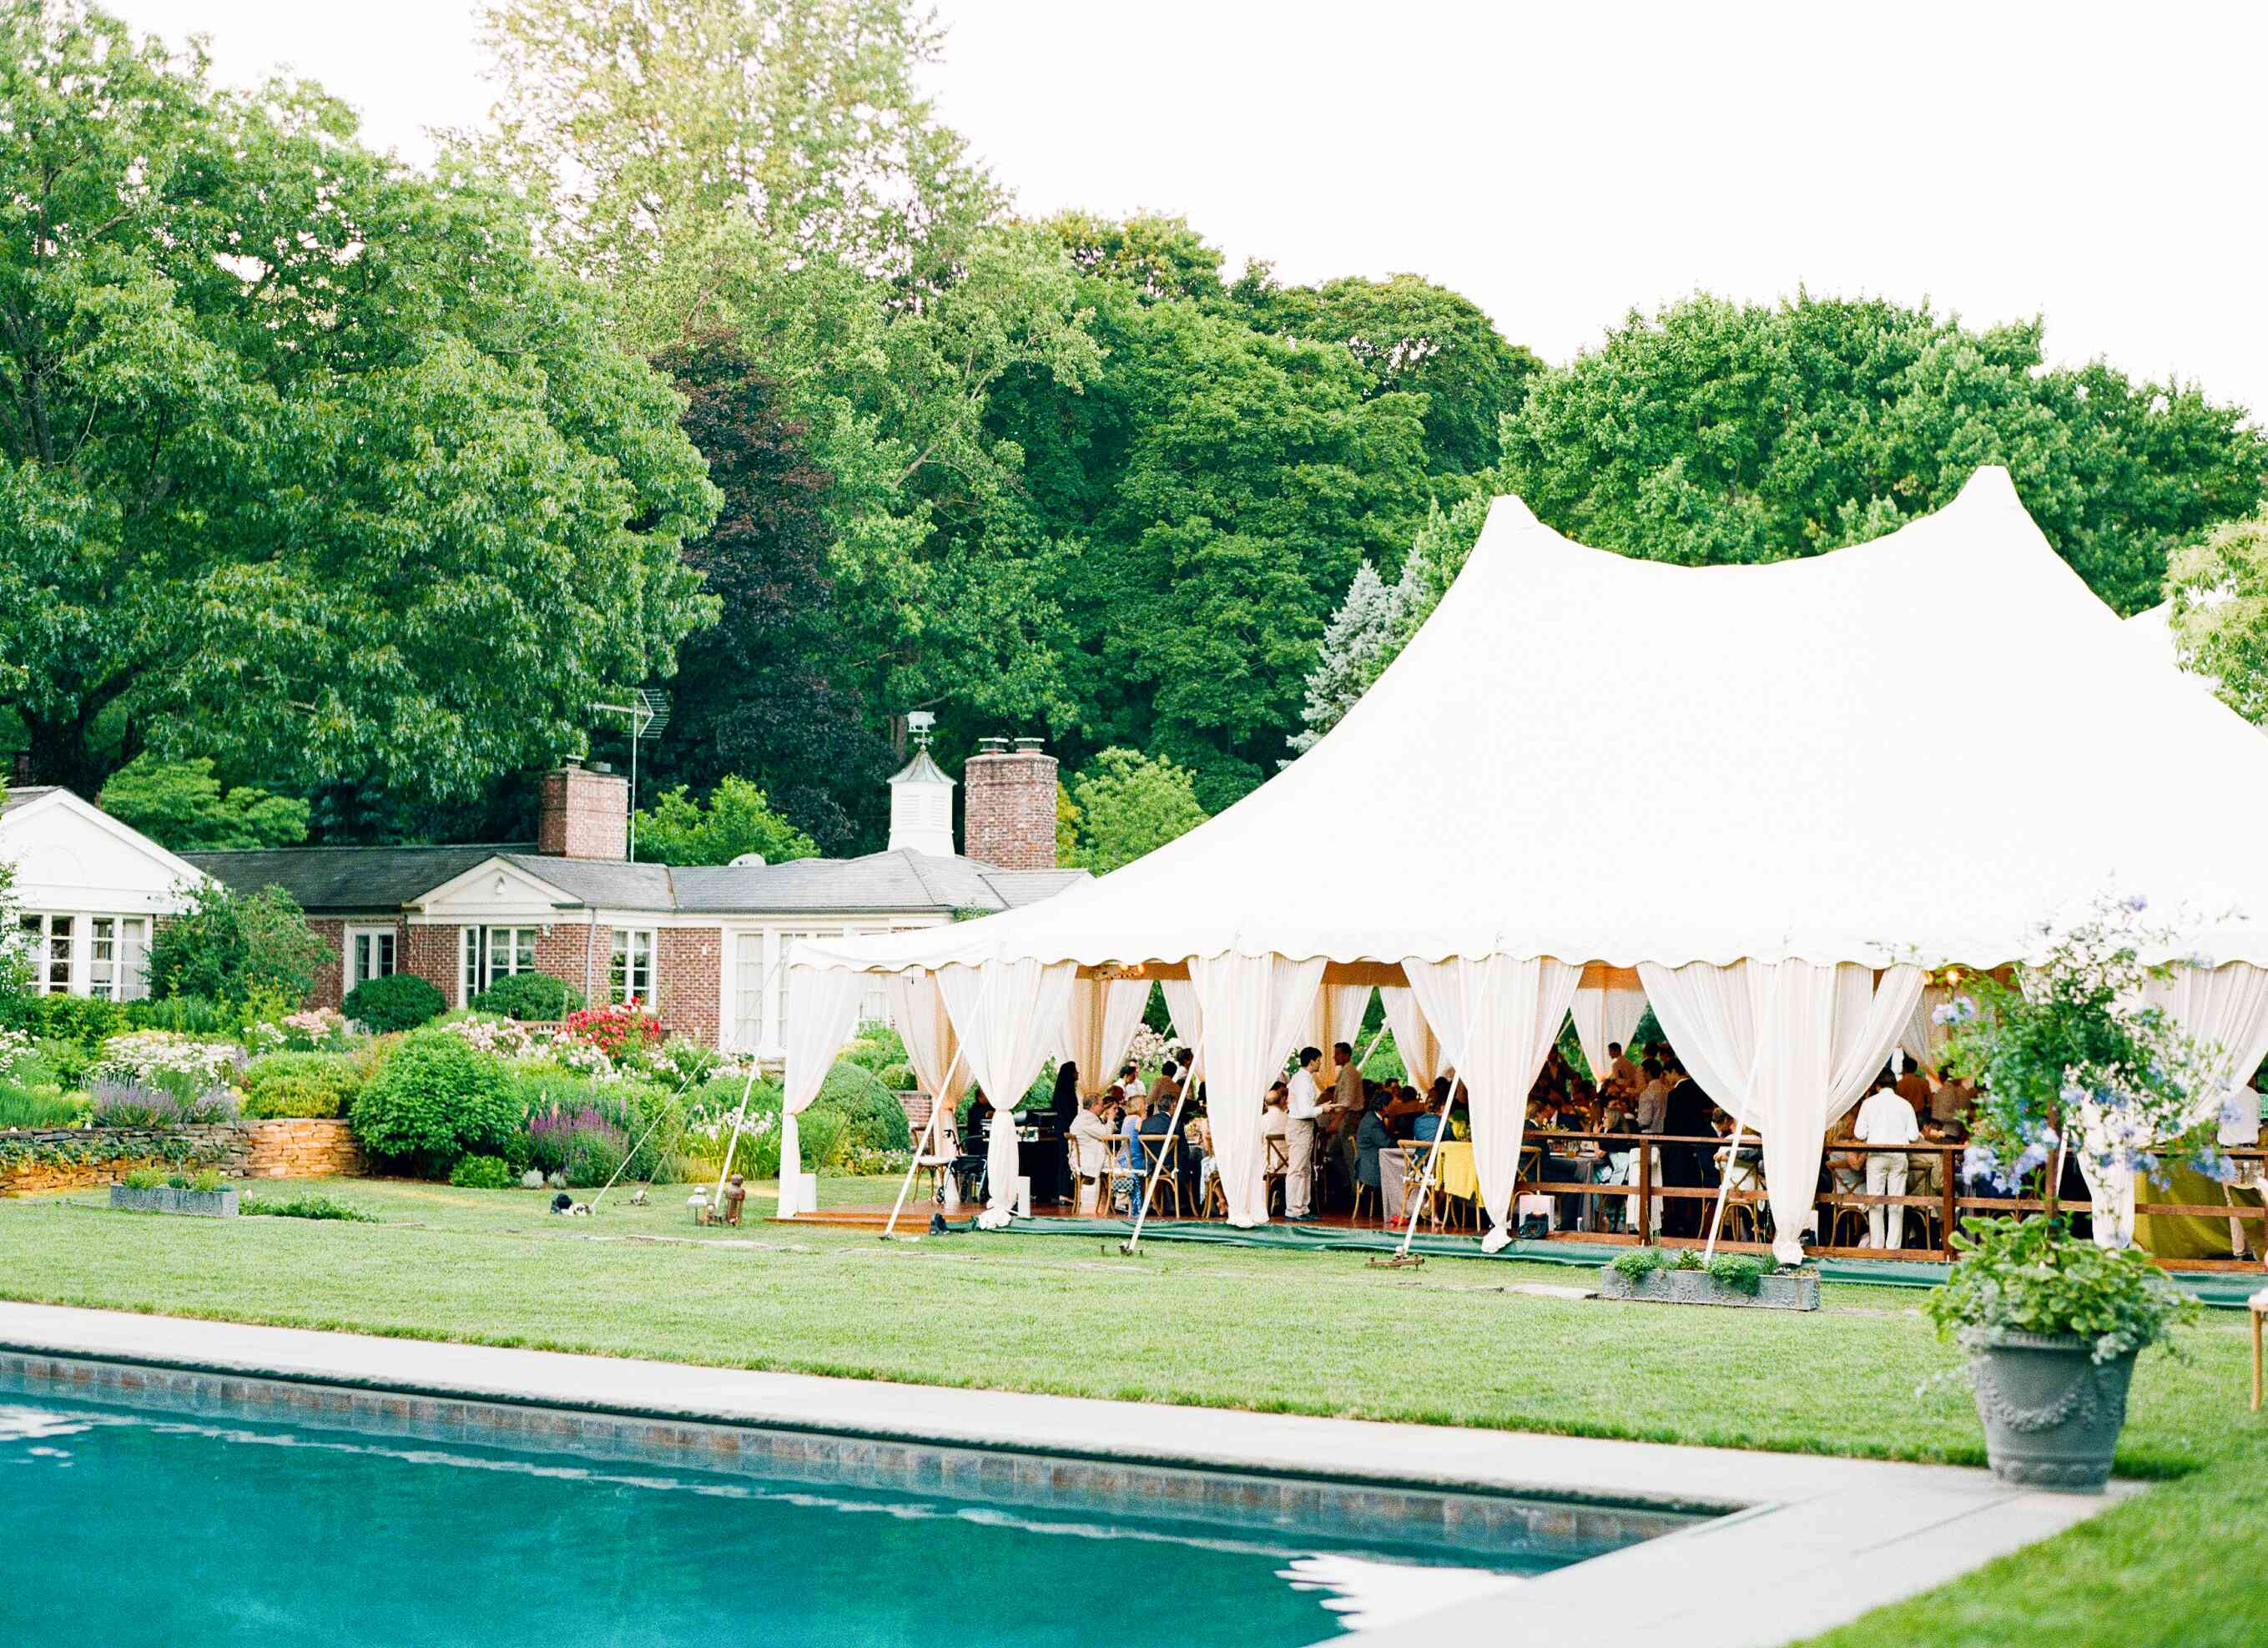 The 10 Things You MUST Do If You're Having a Tent Wedding Wedding Tent Decorating Ideas Pool Backyard on backyard pool lighting ideas, birdhouse decorating ideas, backyard pool wedding ideas, backyard pool fencing ideas, lake decorating ideas, backyard pool garden, backyard pool construction, backyard pool deck ideas, backyard pool fireplaces, river decorating ideas, barbecue decorating ideas, bird bath decorating ideas, backyard pool design, backyard pool furniture ideas, ocean decorating ideas, backyard pool diy, backyard pool storage ideas, backyard pool house ideas, small backyard pool ideas, backyard pool landscaping ideas,